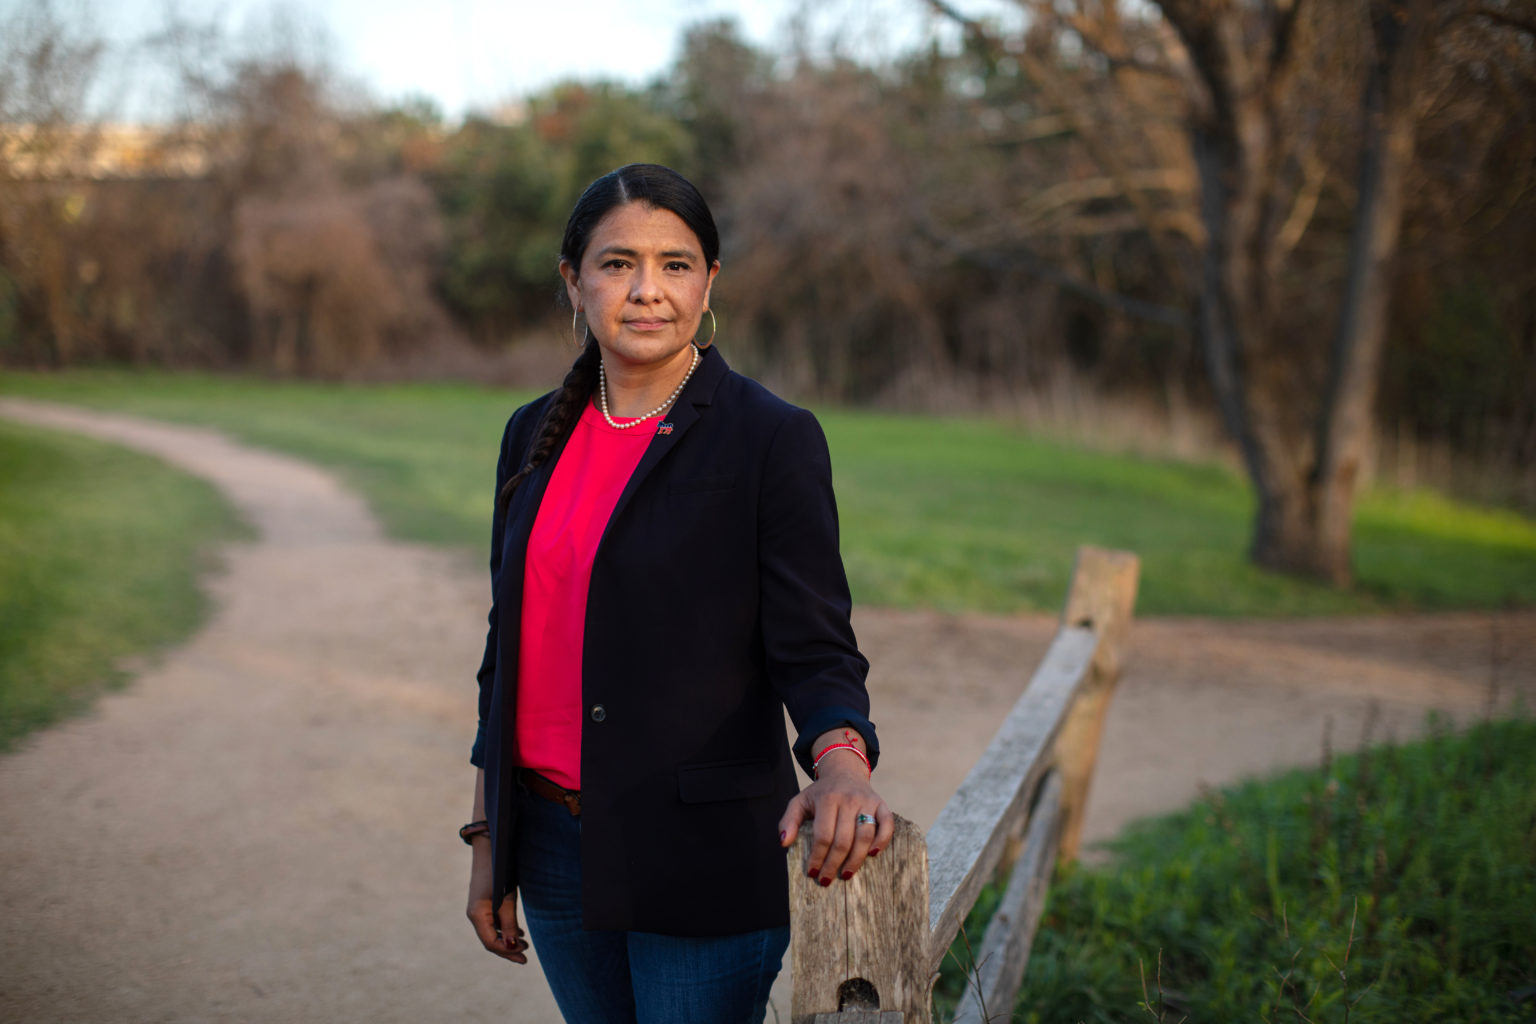 Twenty-nine years ago, Montserrat Garibay came to Texas with her mother and sister as undocumented immigrants from Mexico City.